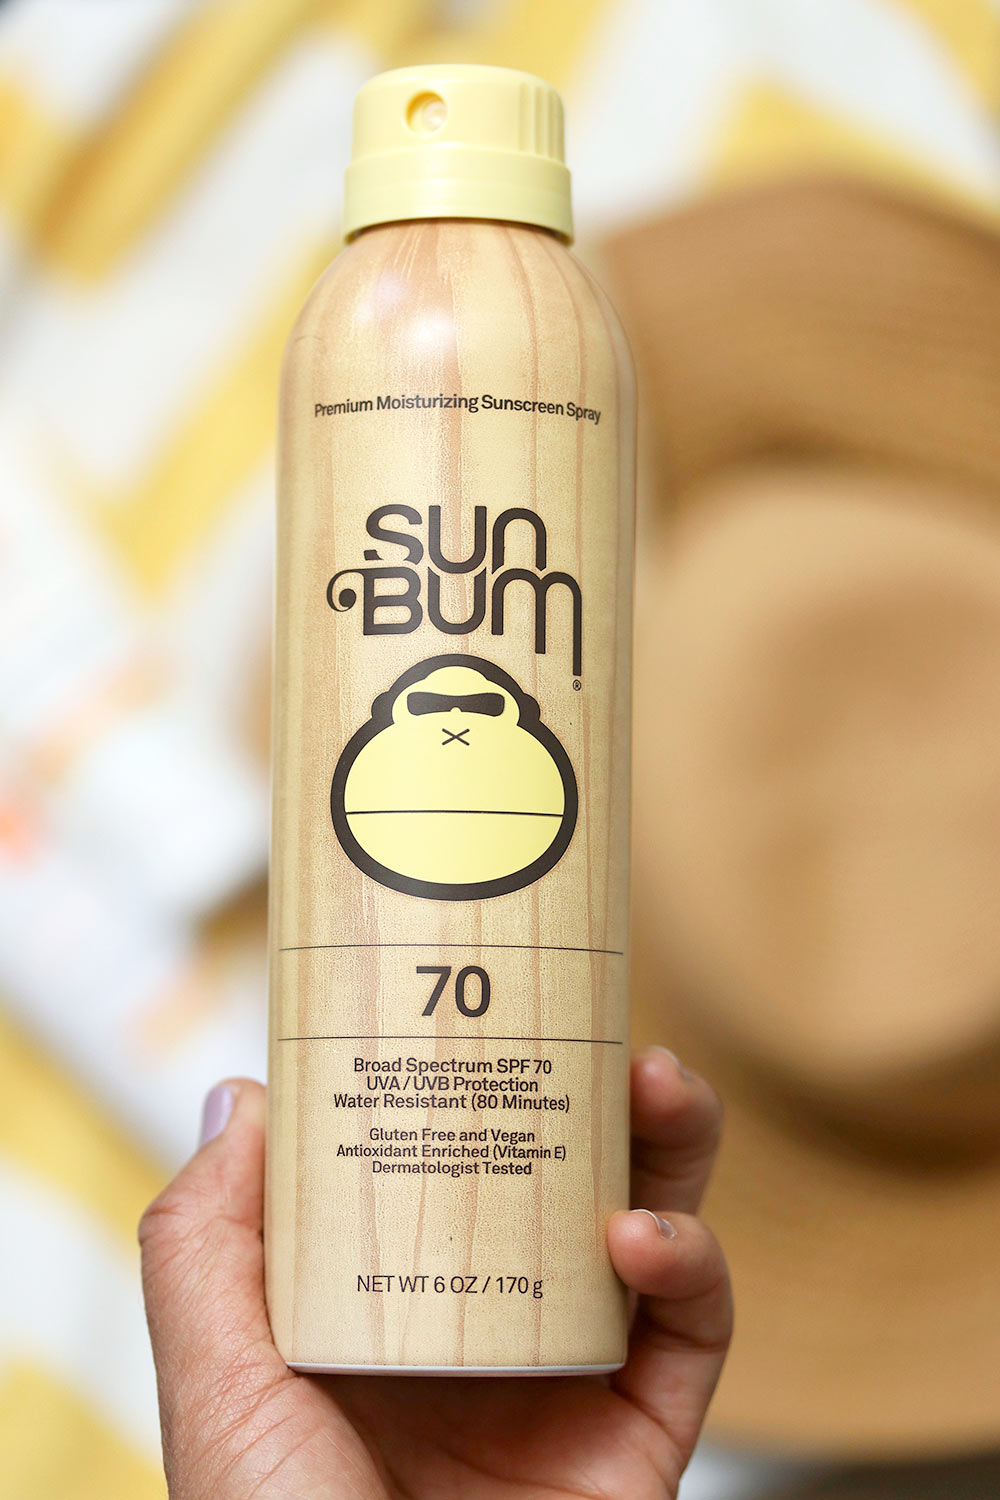 sun bum spray in hand